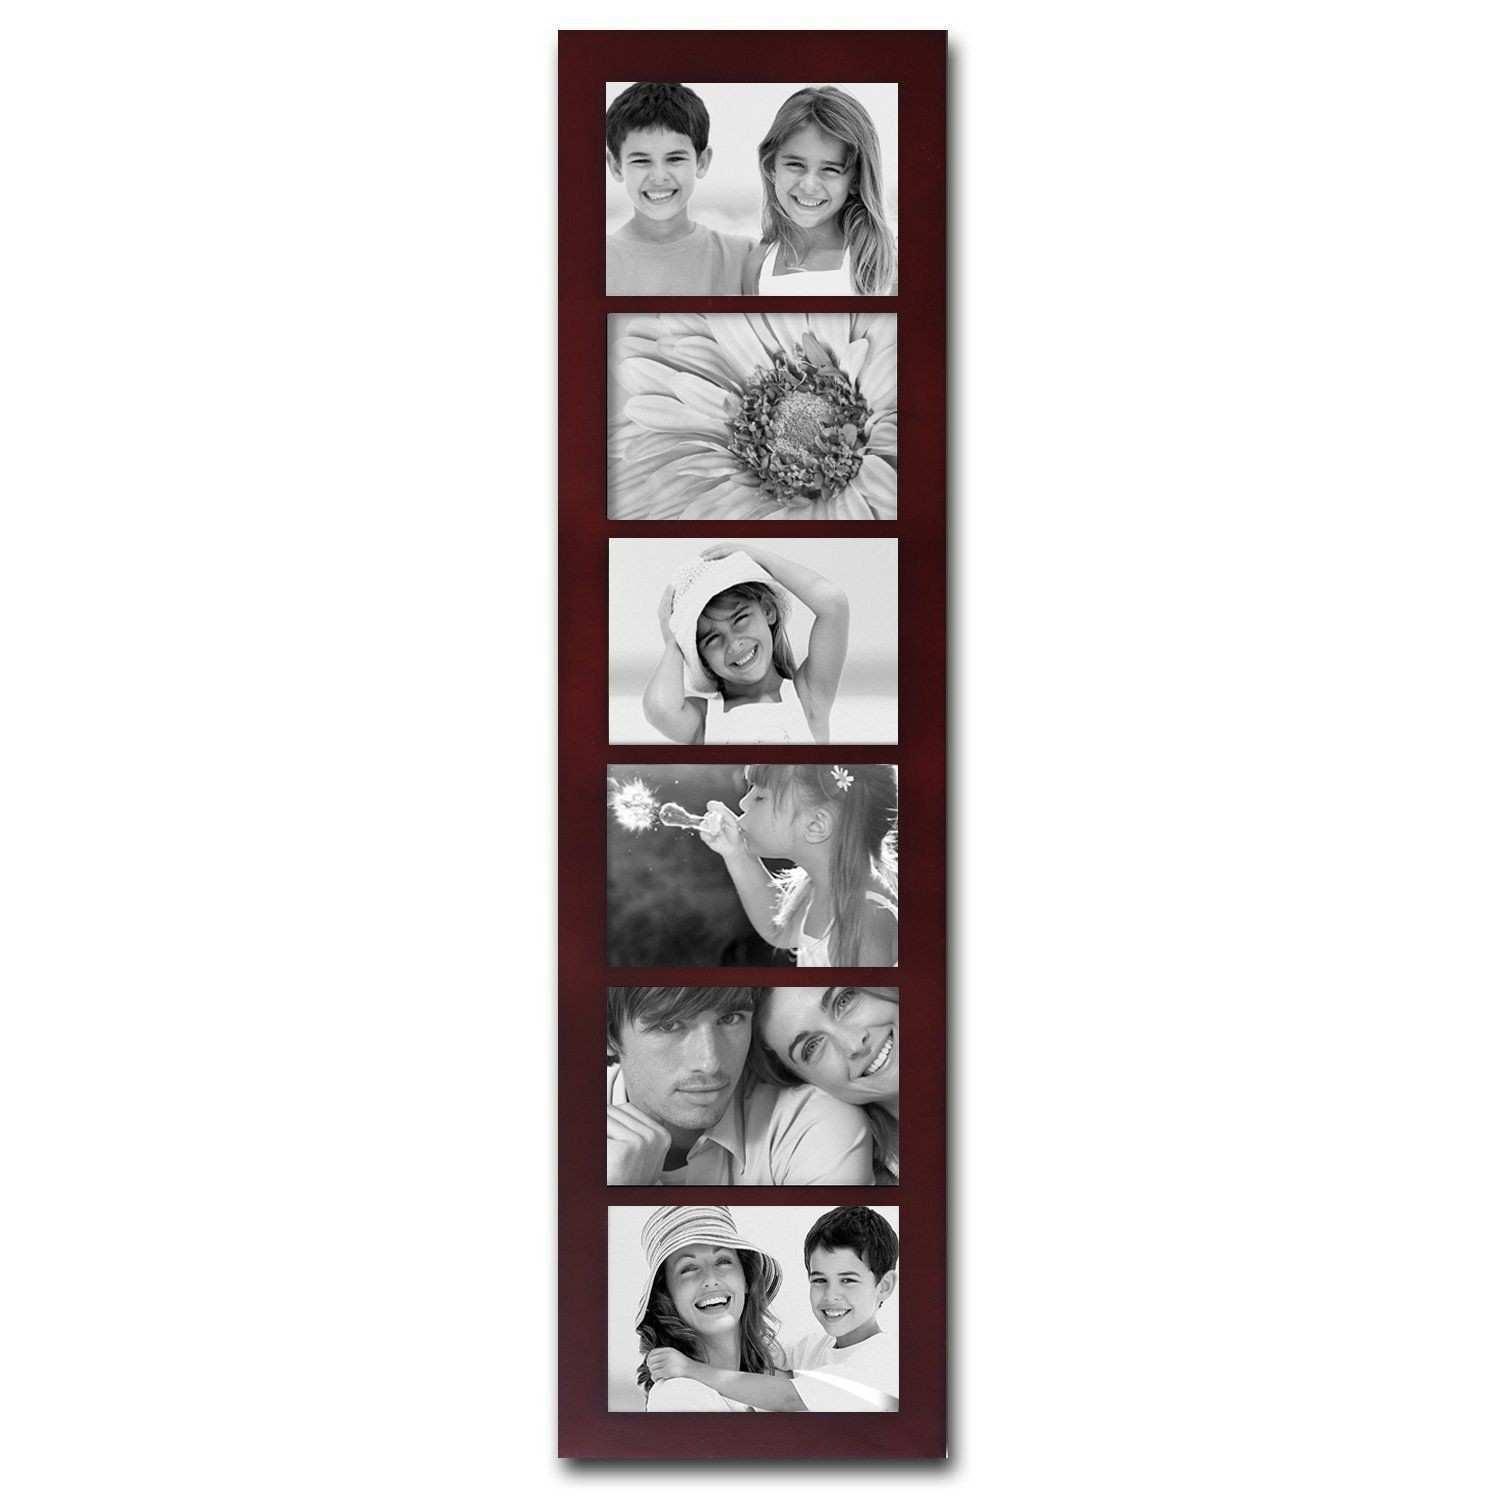 Adeco Walnut Wood 6 opening Collage Picture Frame Walnut Brown